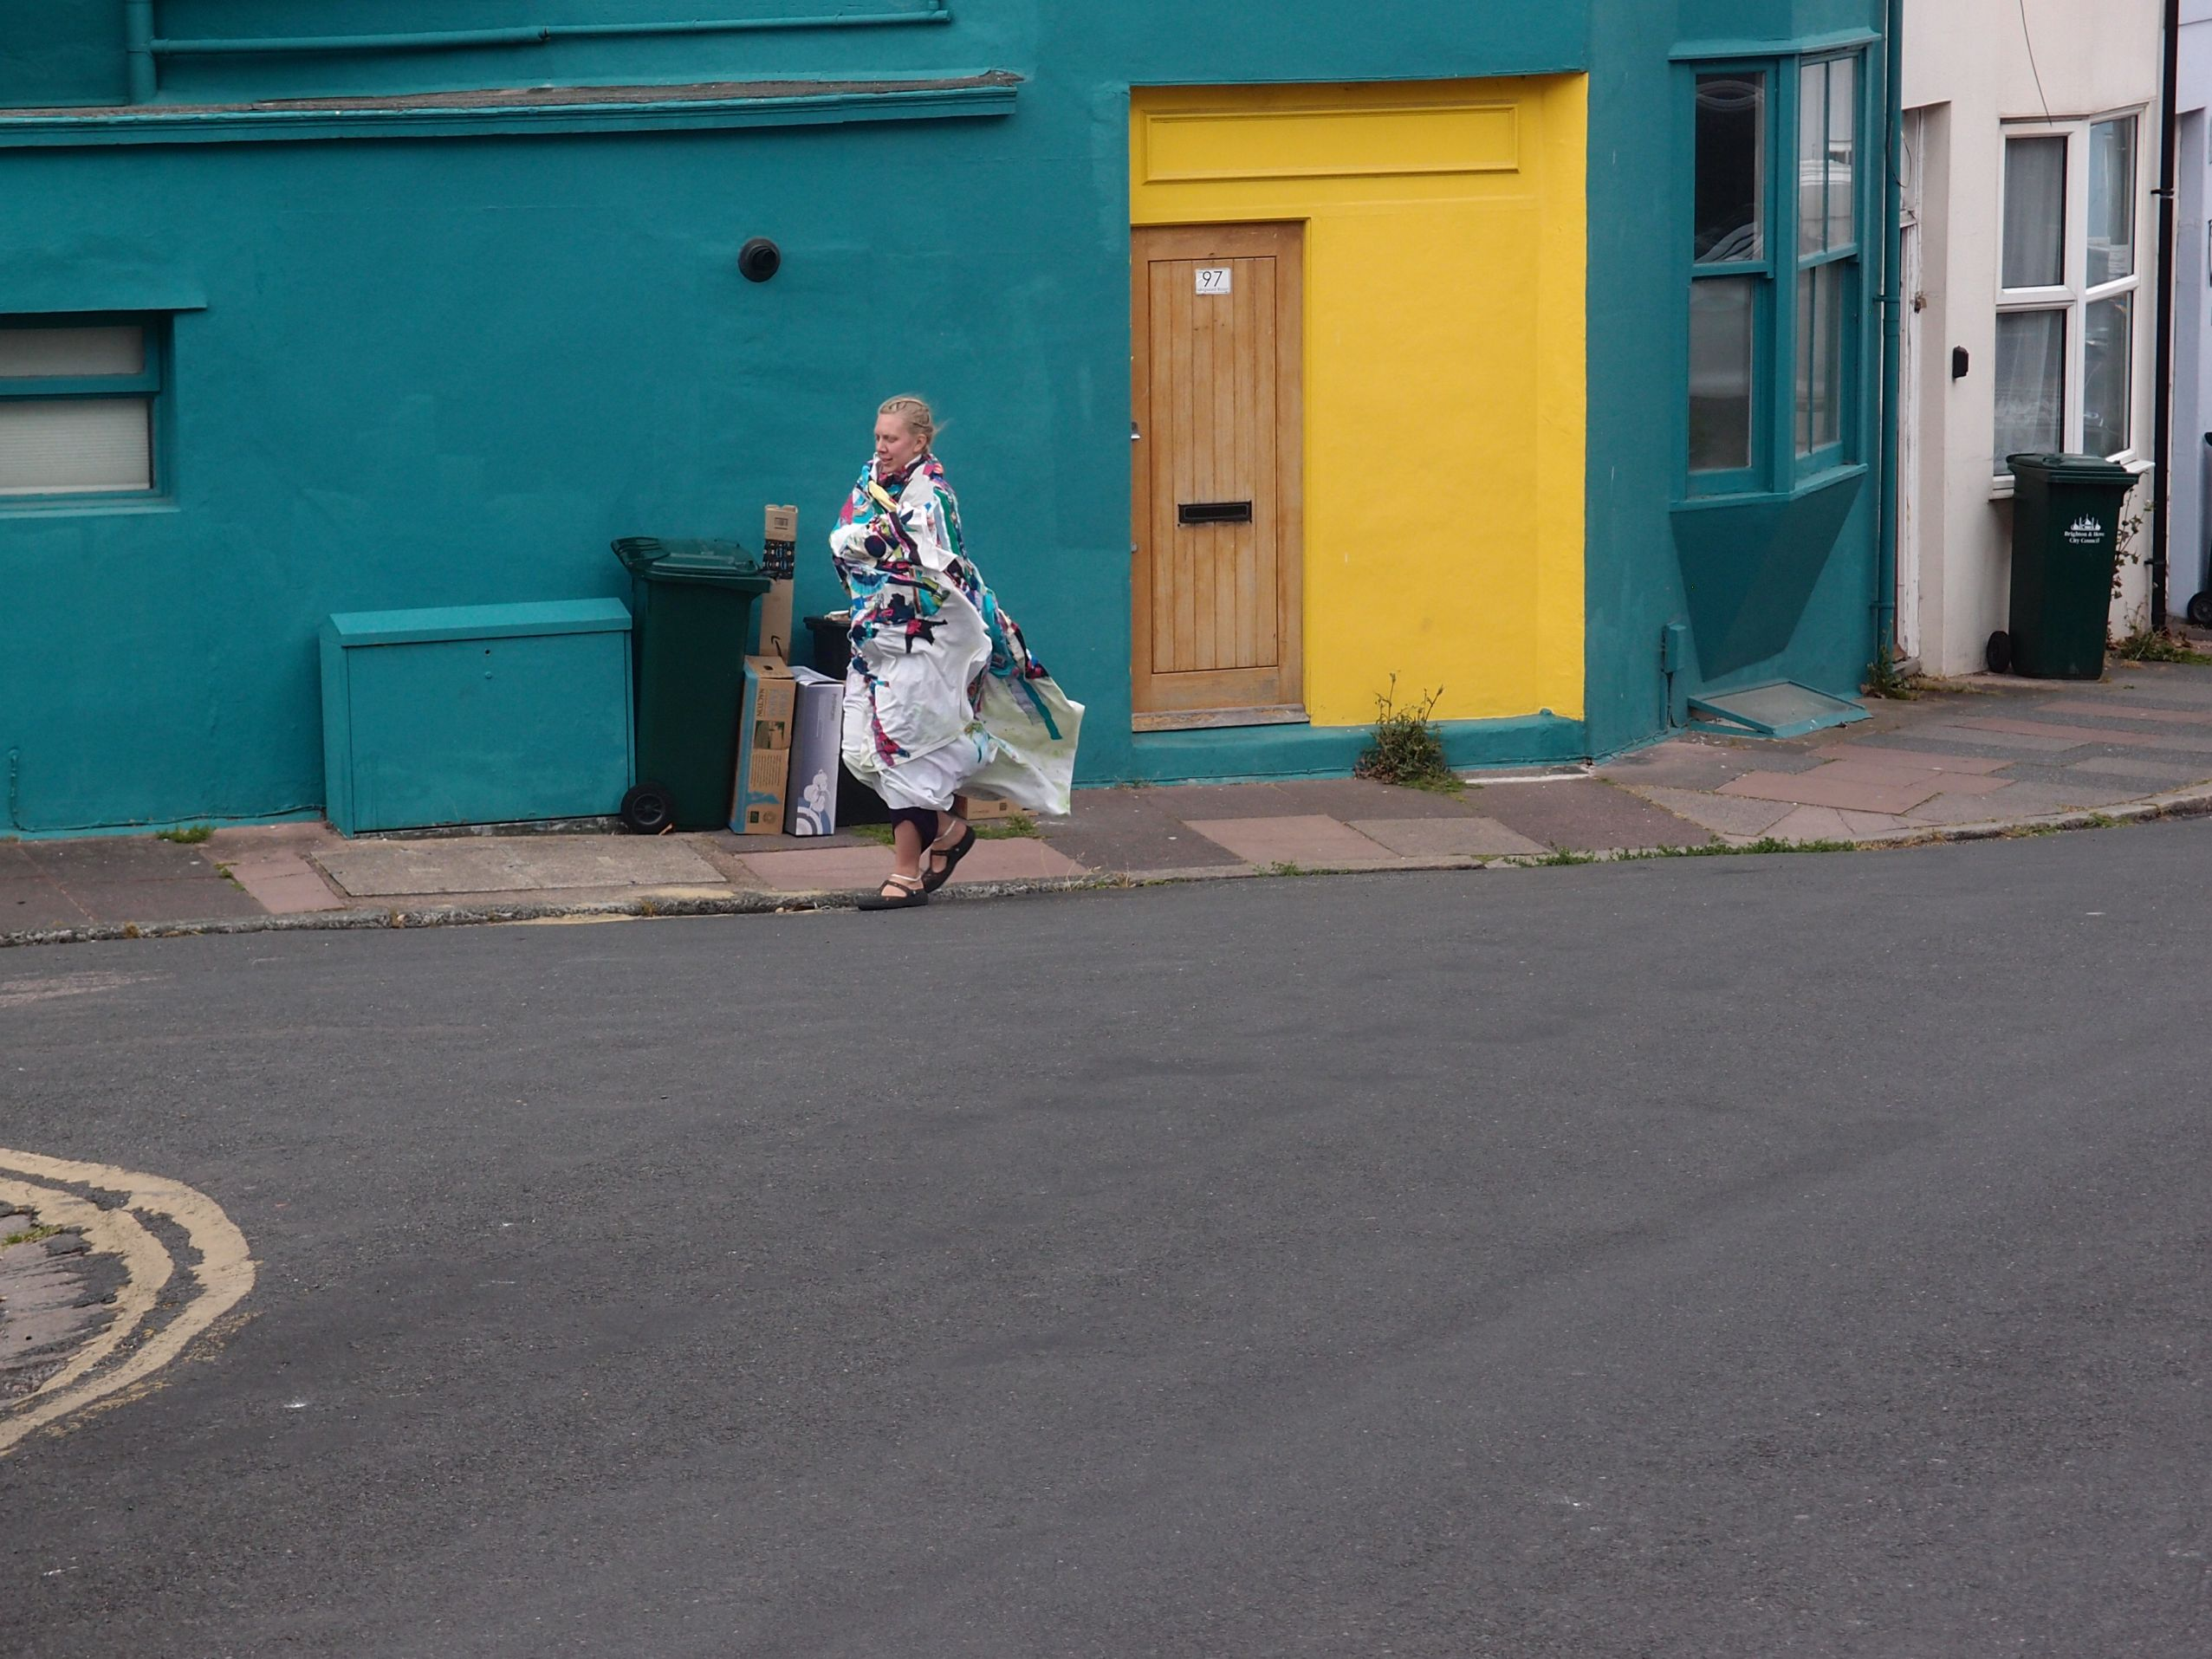 Person outside blue house with yellow door